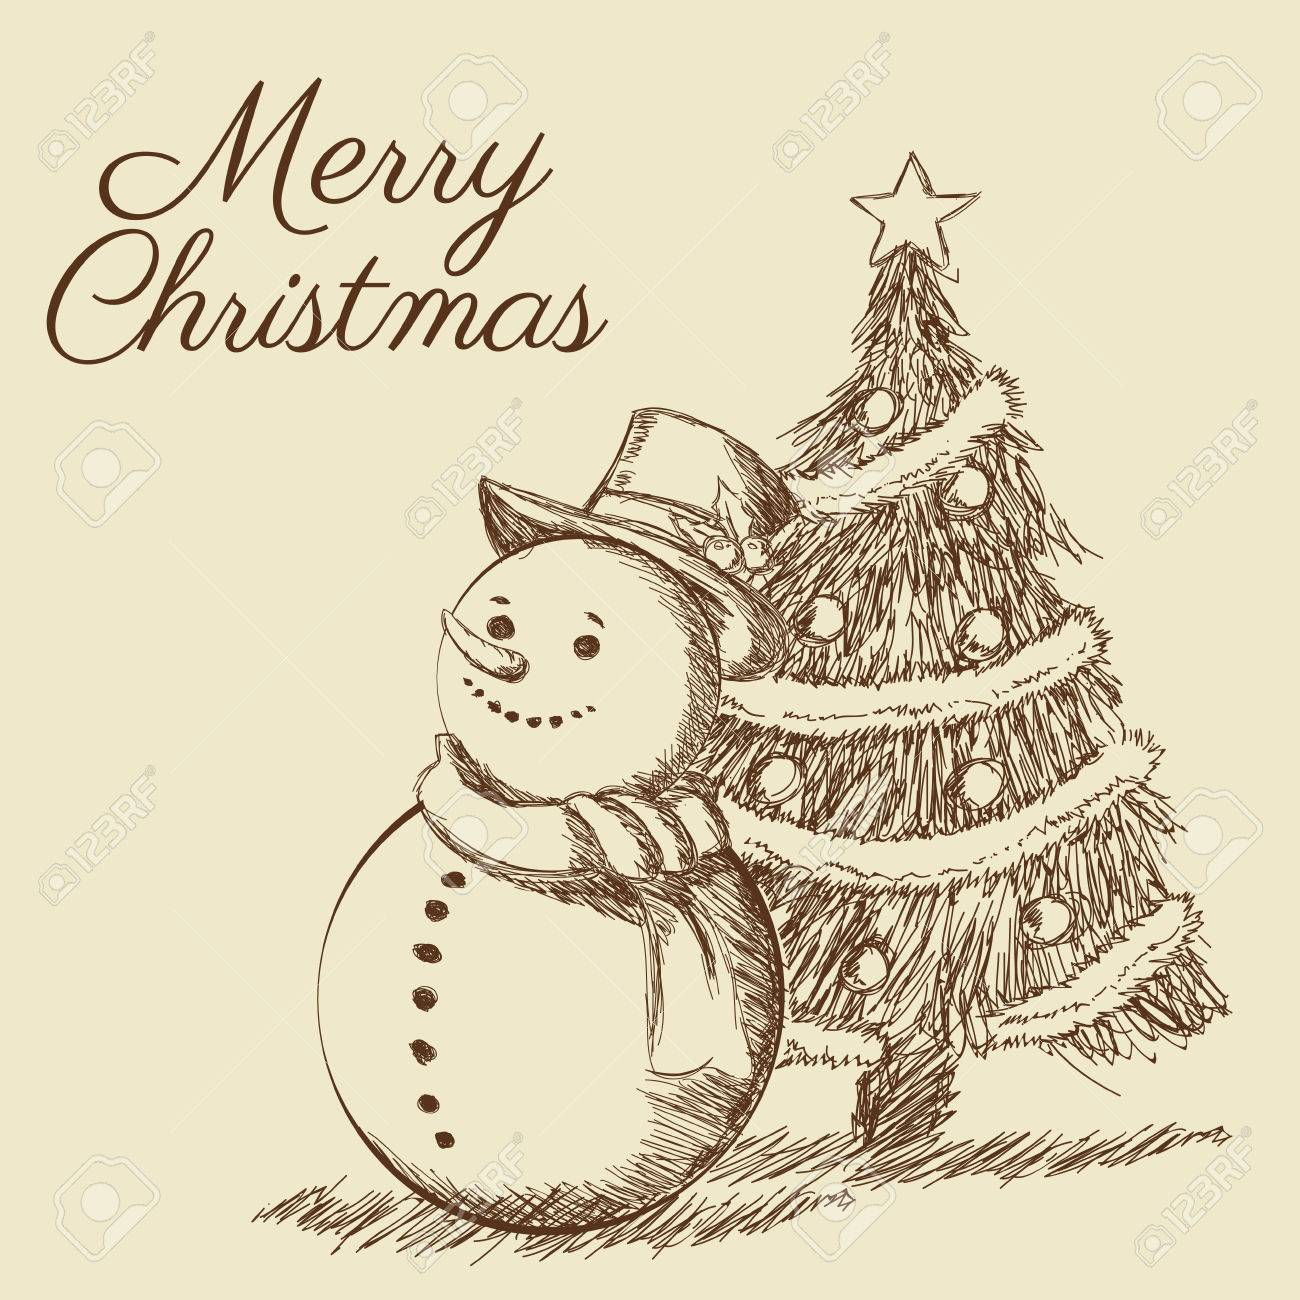 Pine Tree Snowman Merry Christmas Decoration Celebration Icon Isolated Draw And Sketch Design Vector